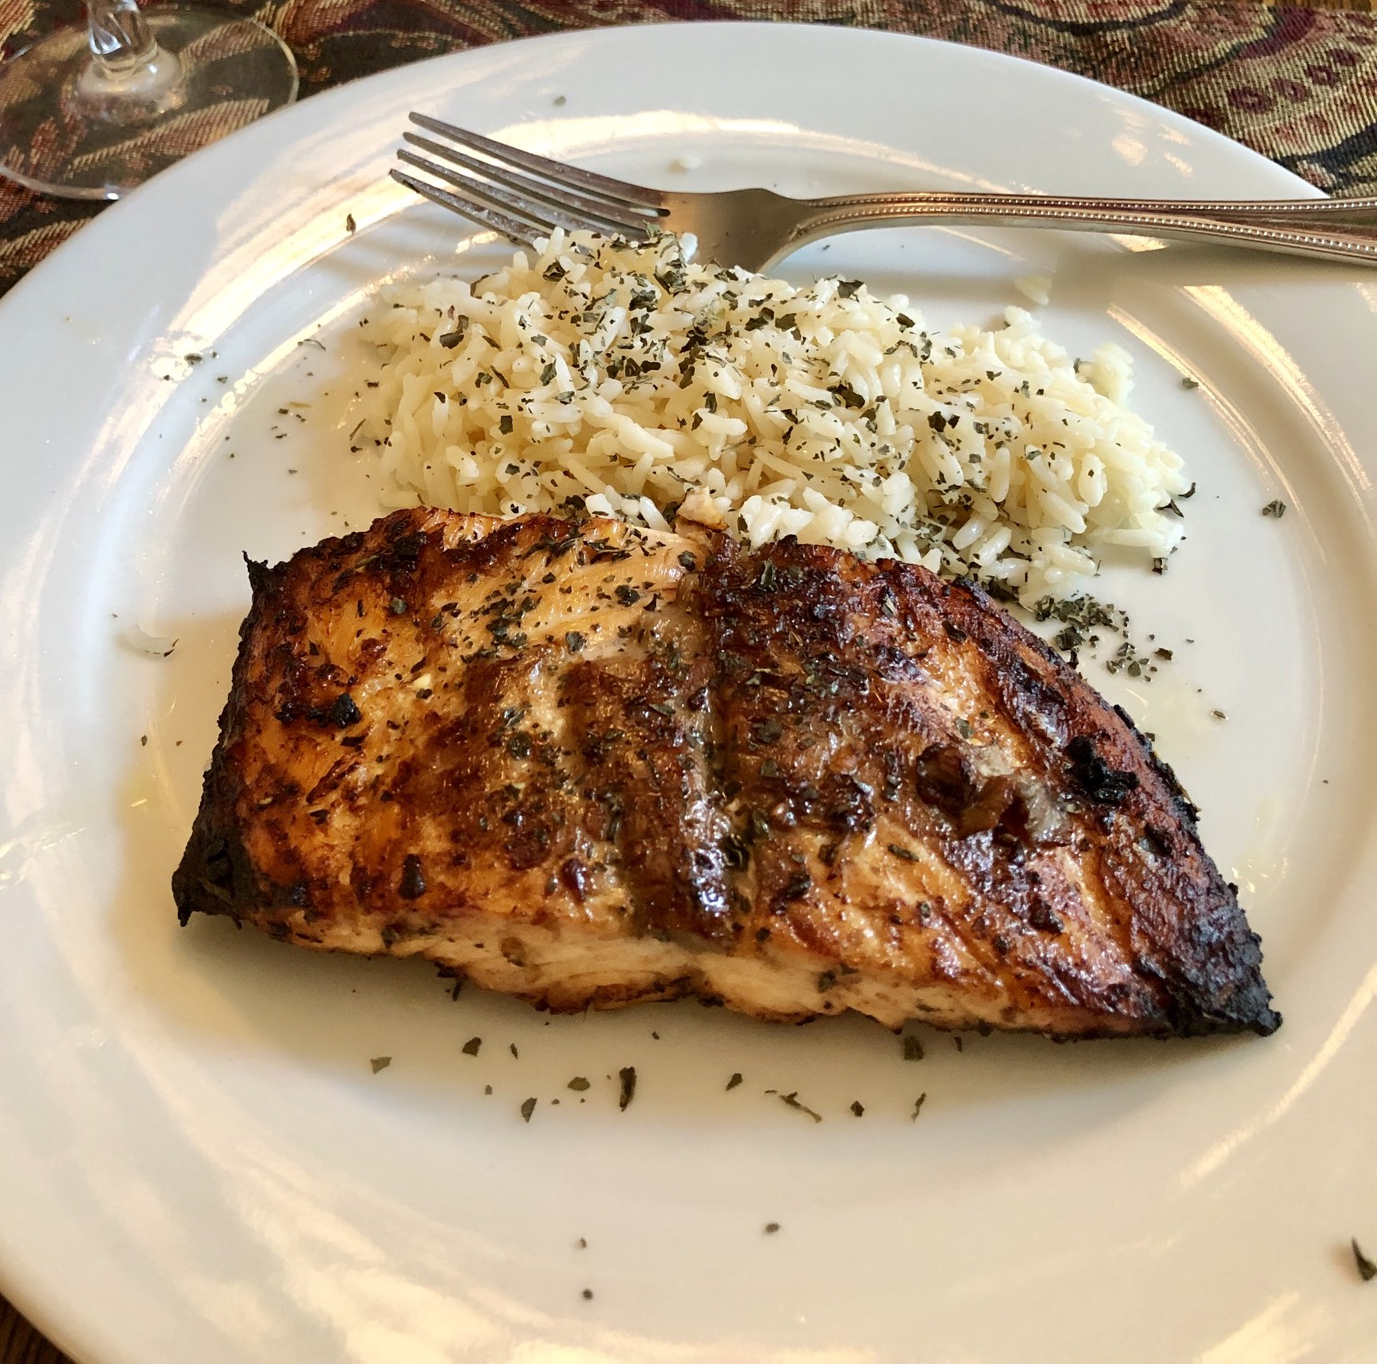 """Marinate salmon fillets for just 10 minutes in balsamic vinegar,聽 garlic, olive oil, fresh cilantro and basil. Broil on both sides, brushing occasionally with the sauce, until the salmon is easily flaked with a fork. """"Both my boyfriend and myself really loved this marinade,"""" says Kilyth. """"It works just as well on swordfish and is so quick and easy that I will definitely make this again."""""""